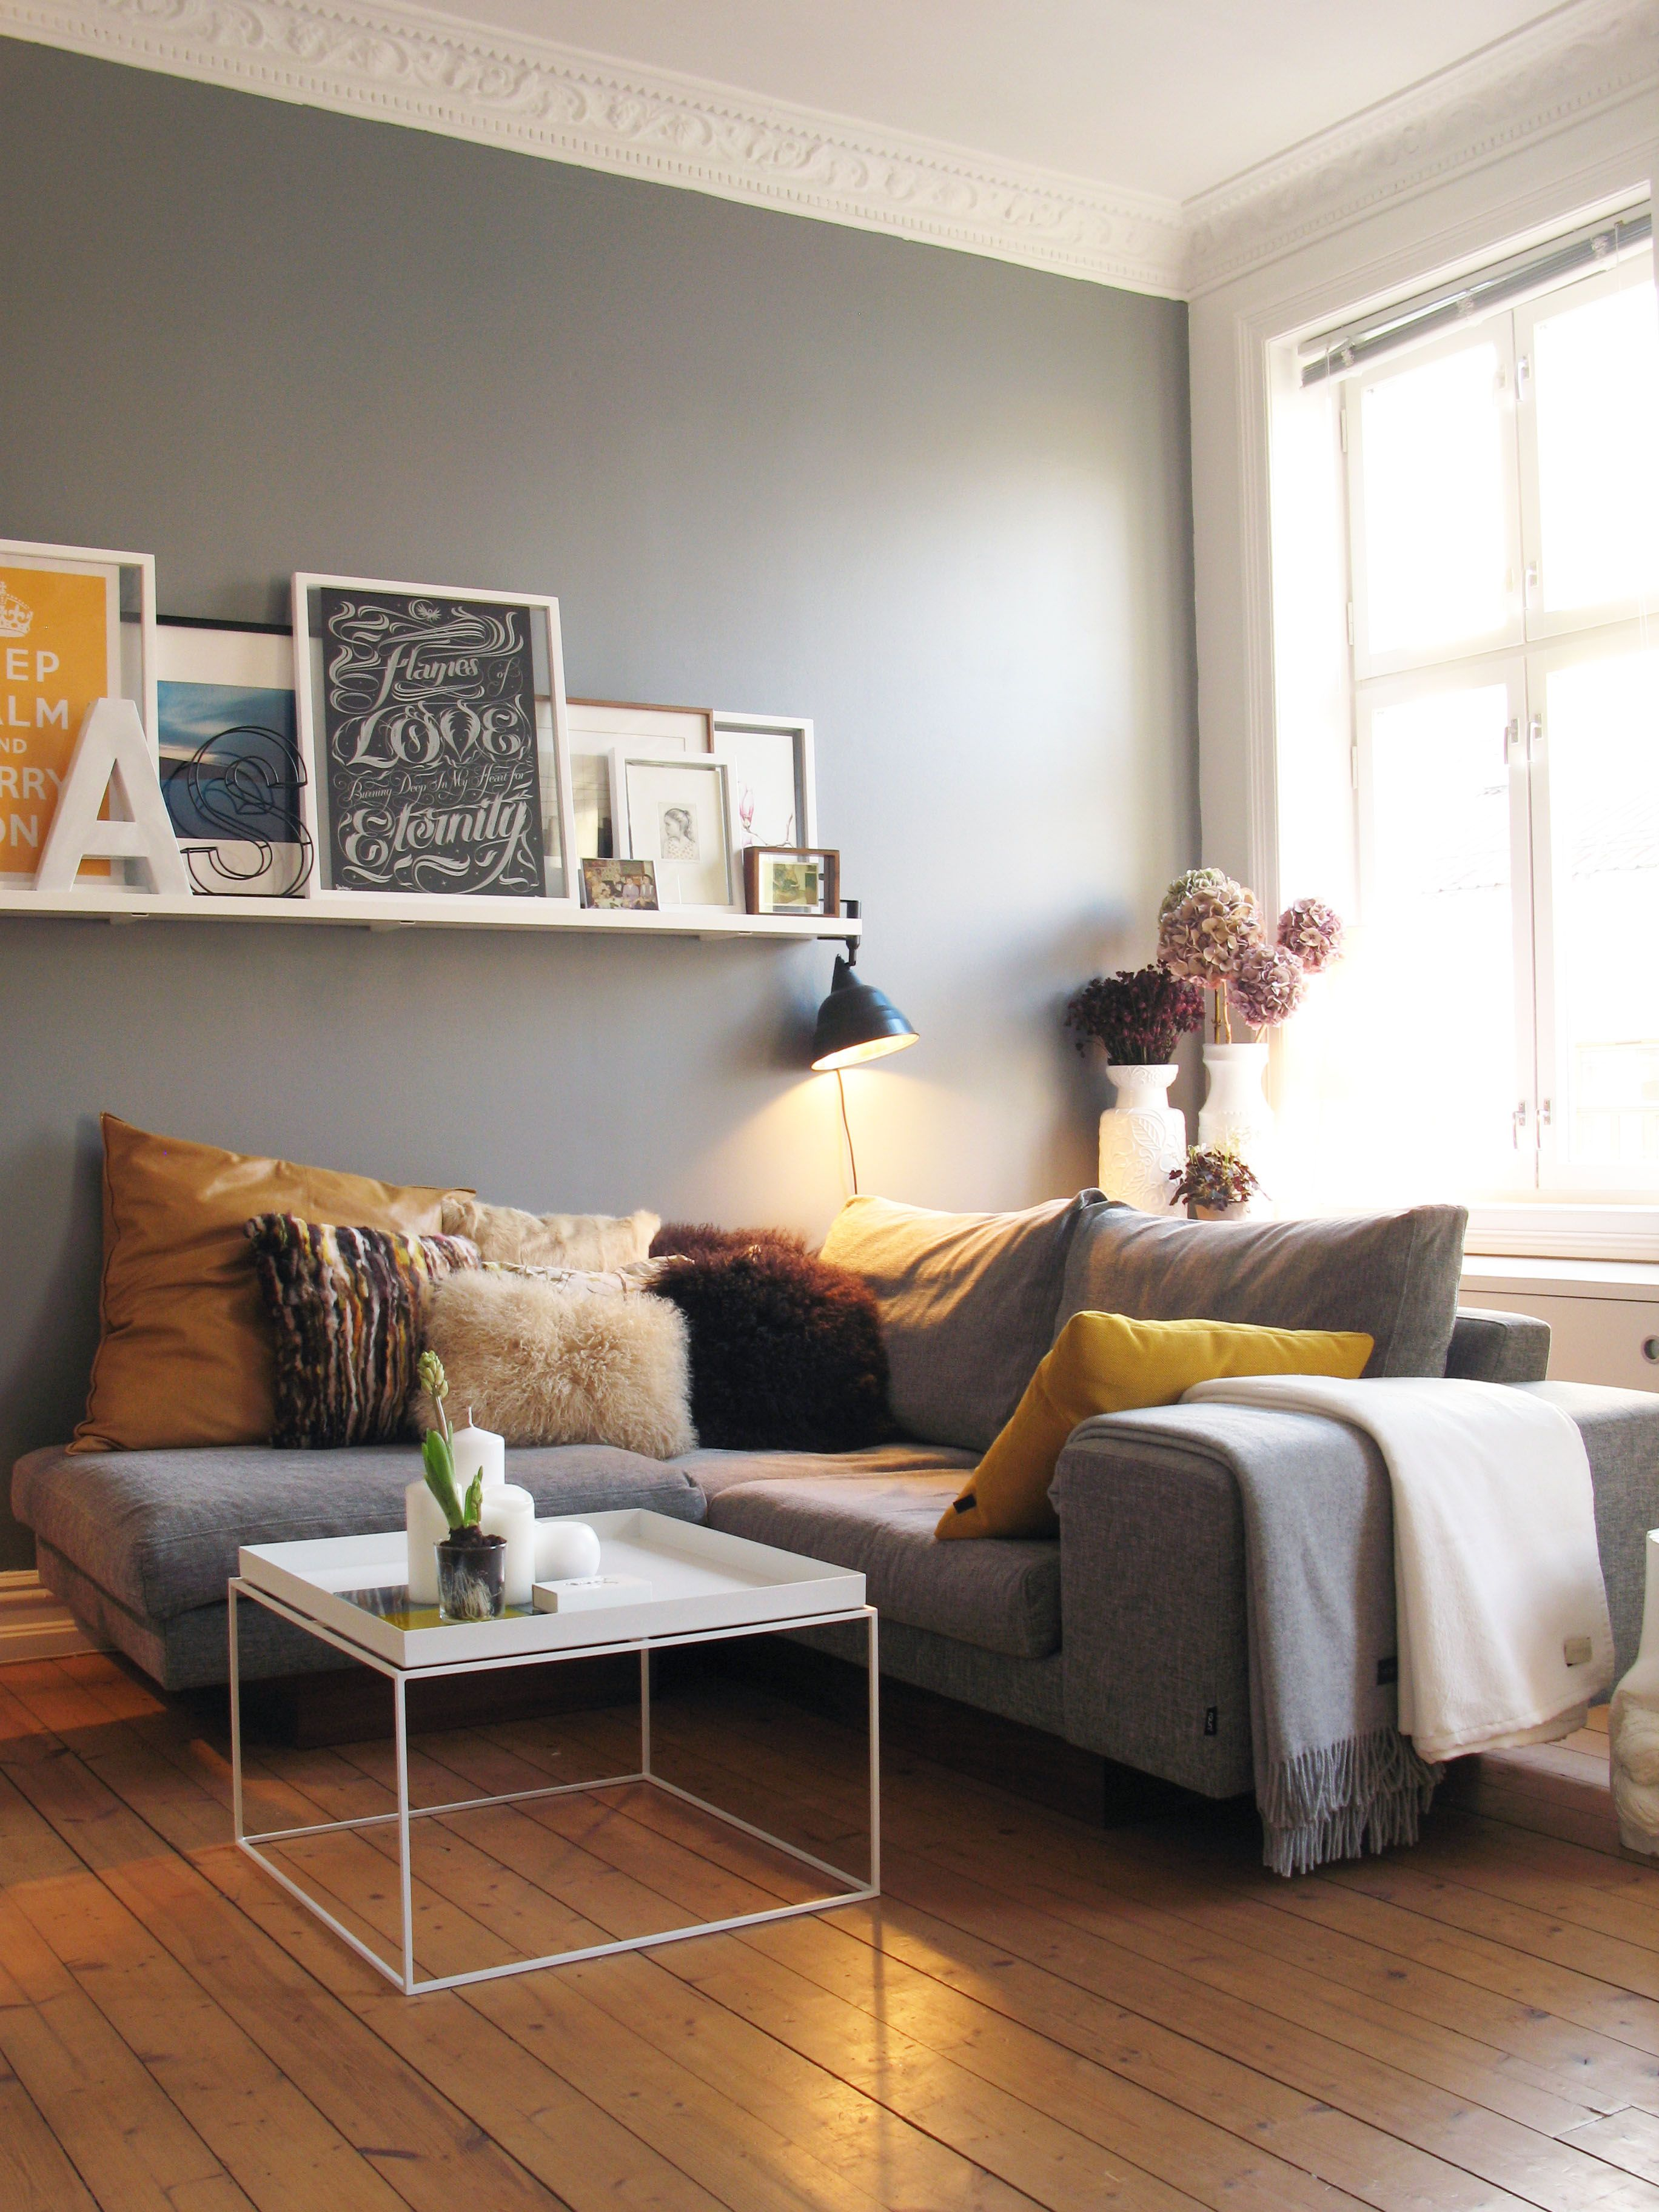 Living Room Interiors Inspiration Grey Walls Gray Walls Grey Sofa Mustard  Yellow Accents White Floating Shelf With Picture Frames